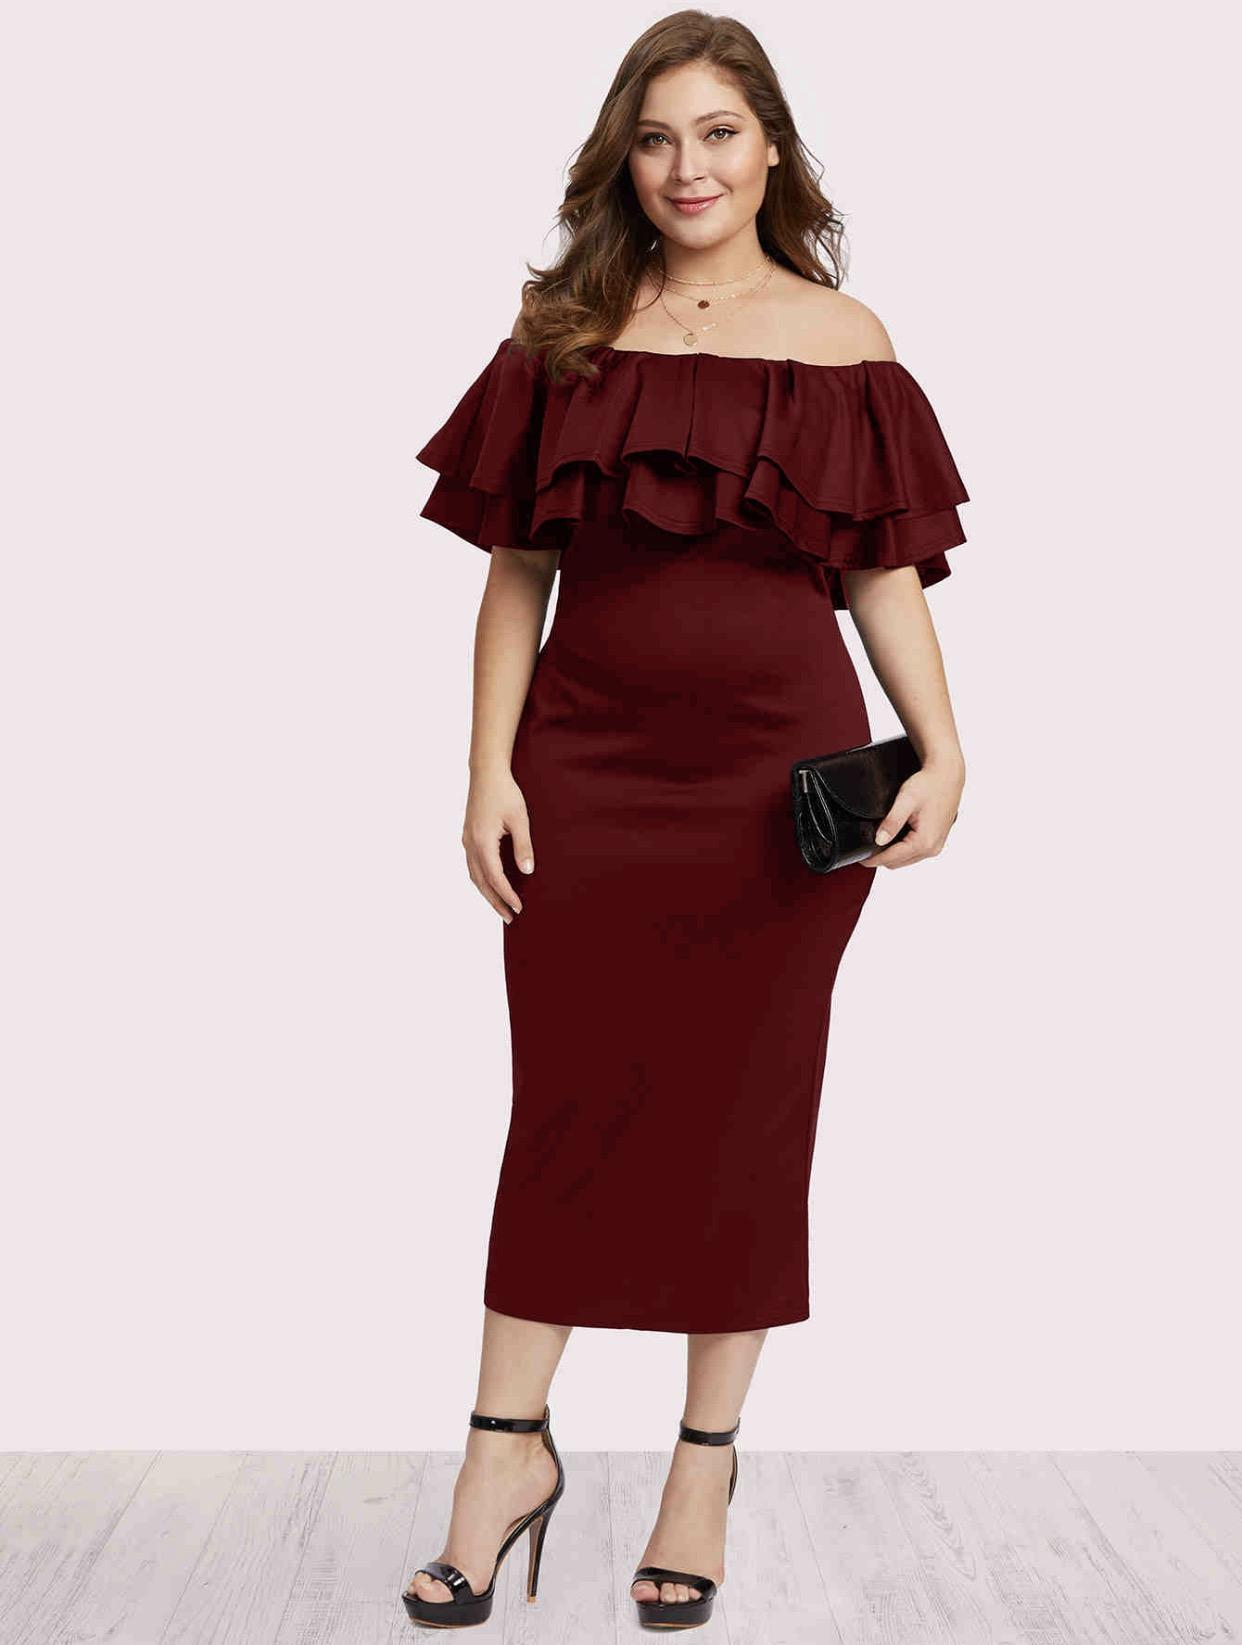 48edfad8e15f Plus Size Dresses for sale - Plus Size Maxi Dress Online Deals ...